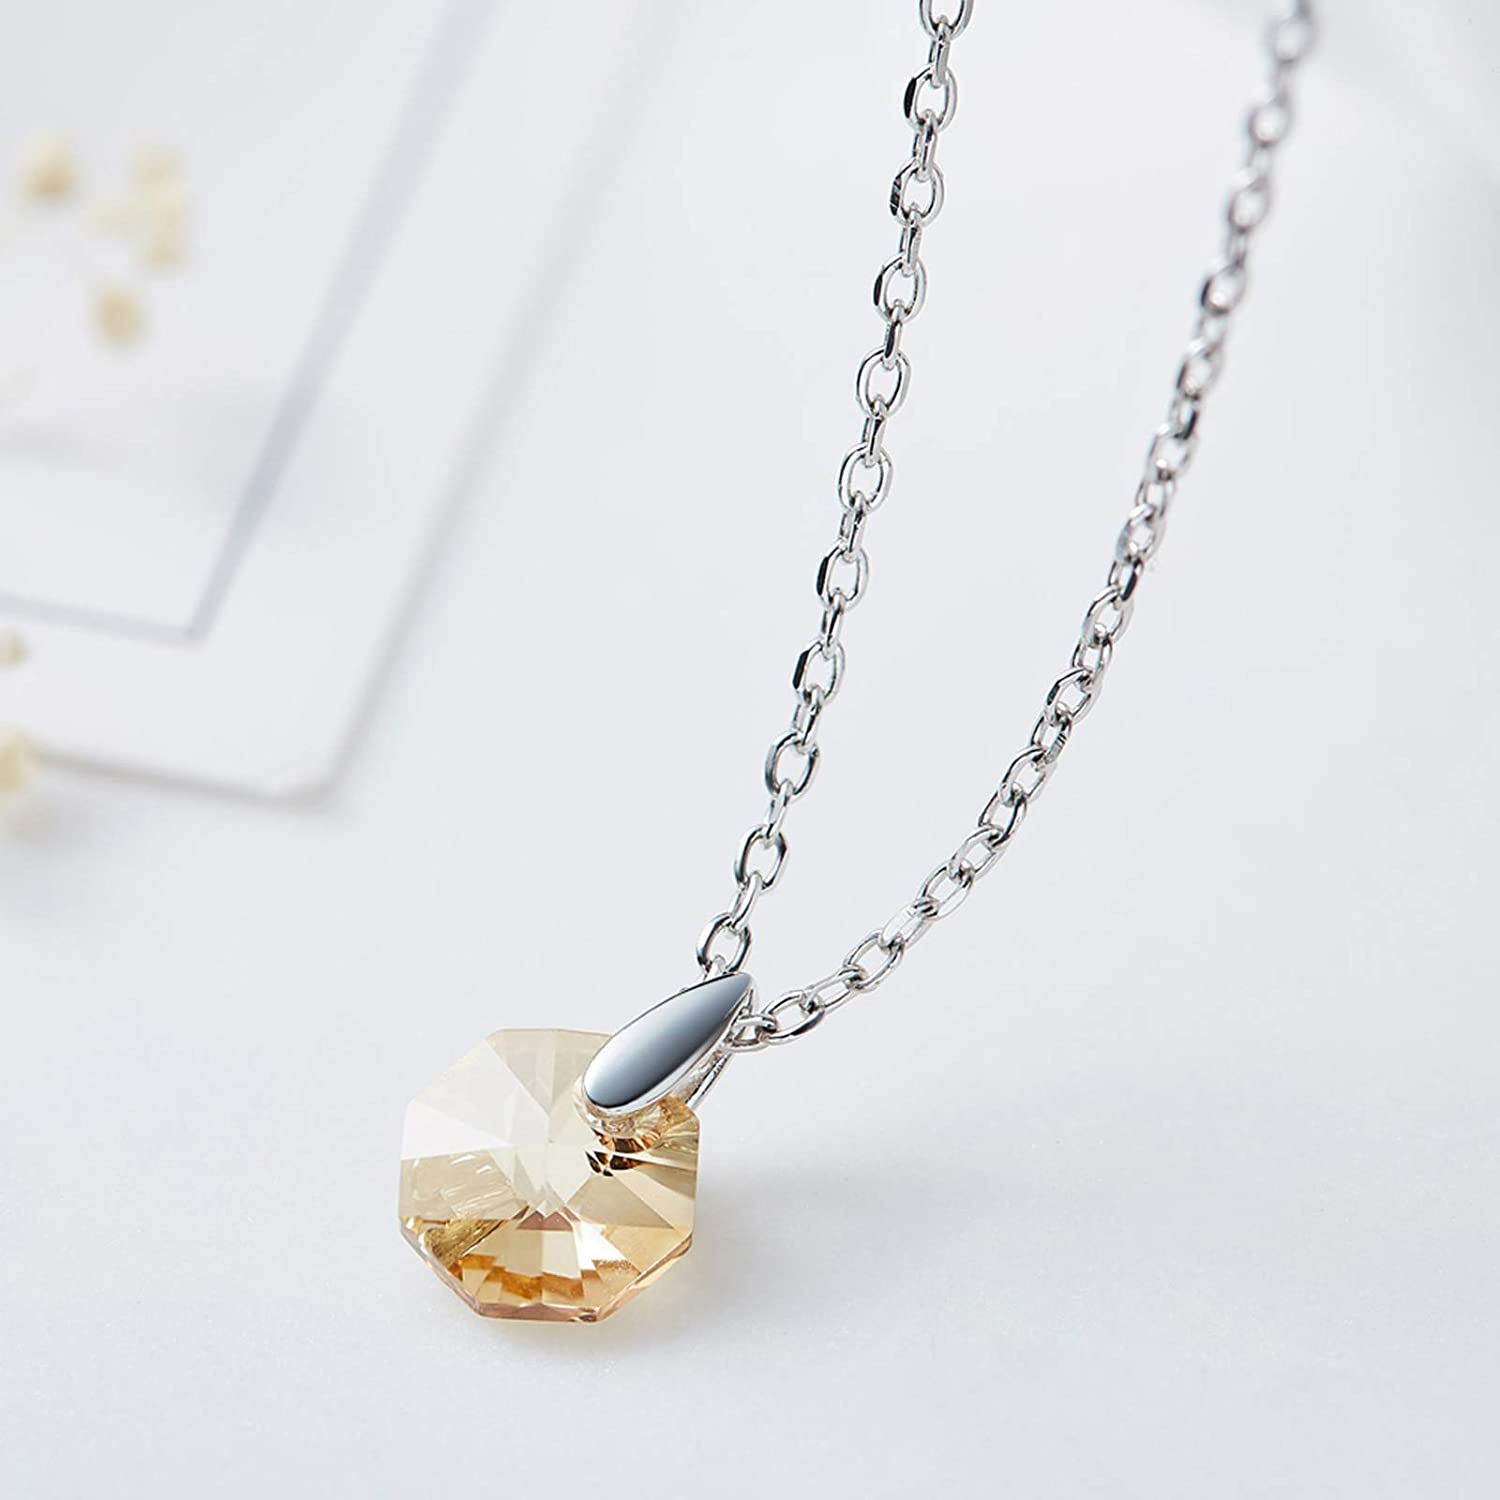 Aienid Necklace for Women 925 Sterling Silver Element Crystal Hexagon Pendant Necklace Purple//Pink//Gold